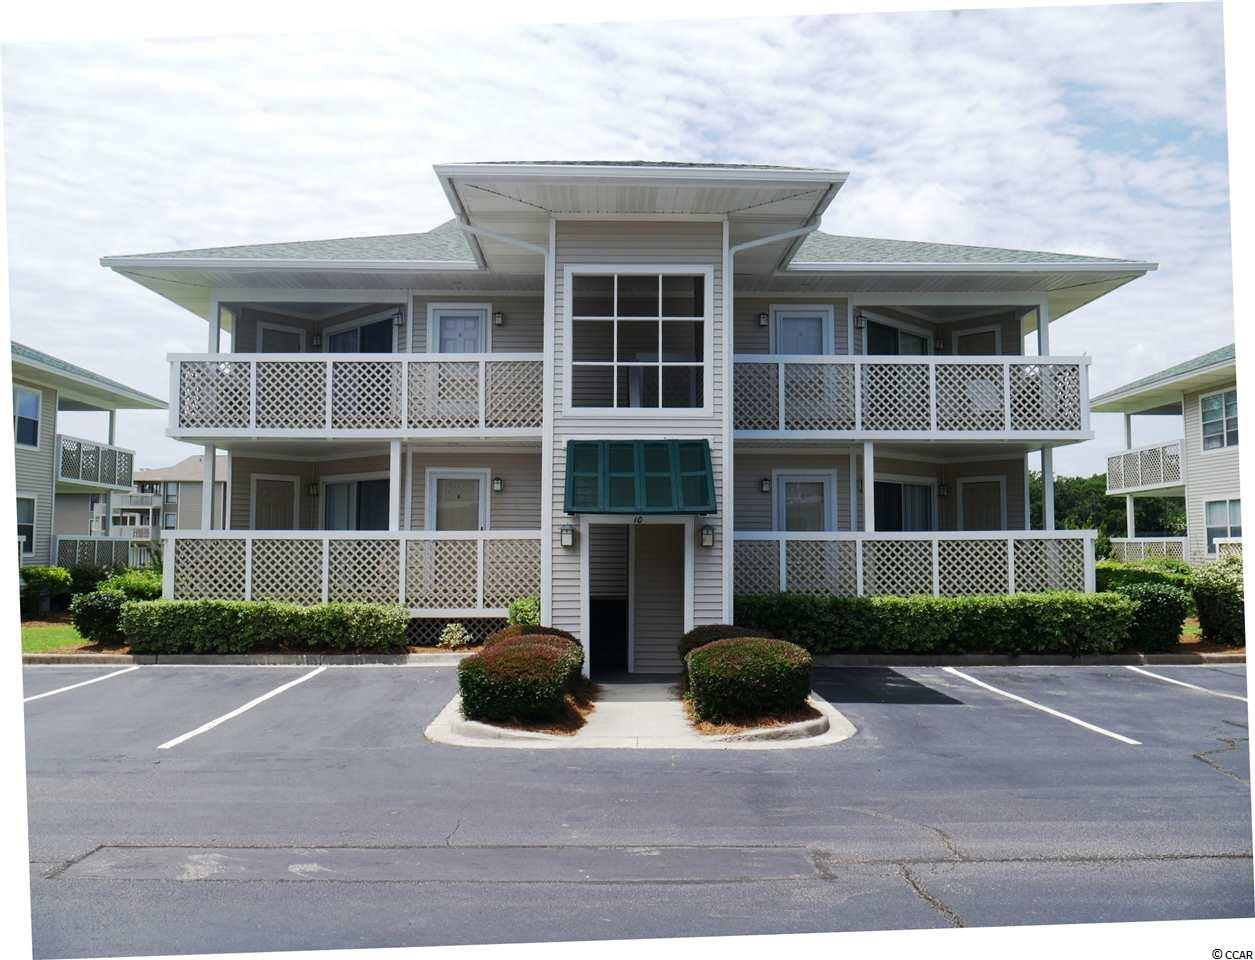 Welcome to Shorehaven II - just a block off the famous Ocean Drive section of North Myrtle Beach.  This desirable first-floor 2 bedroom 2 bath condo is located on the lake with great views of the Surf Club golf course and spectacular sunsets.  Well maintained by the original owners, never been on a rental program, comes fully furnished and is move-in ready.    All Measurements and Features are approximate and should be verified by Buyer.